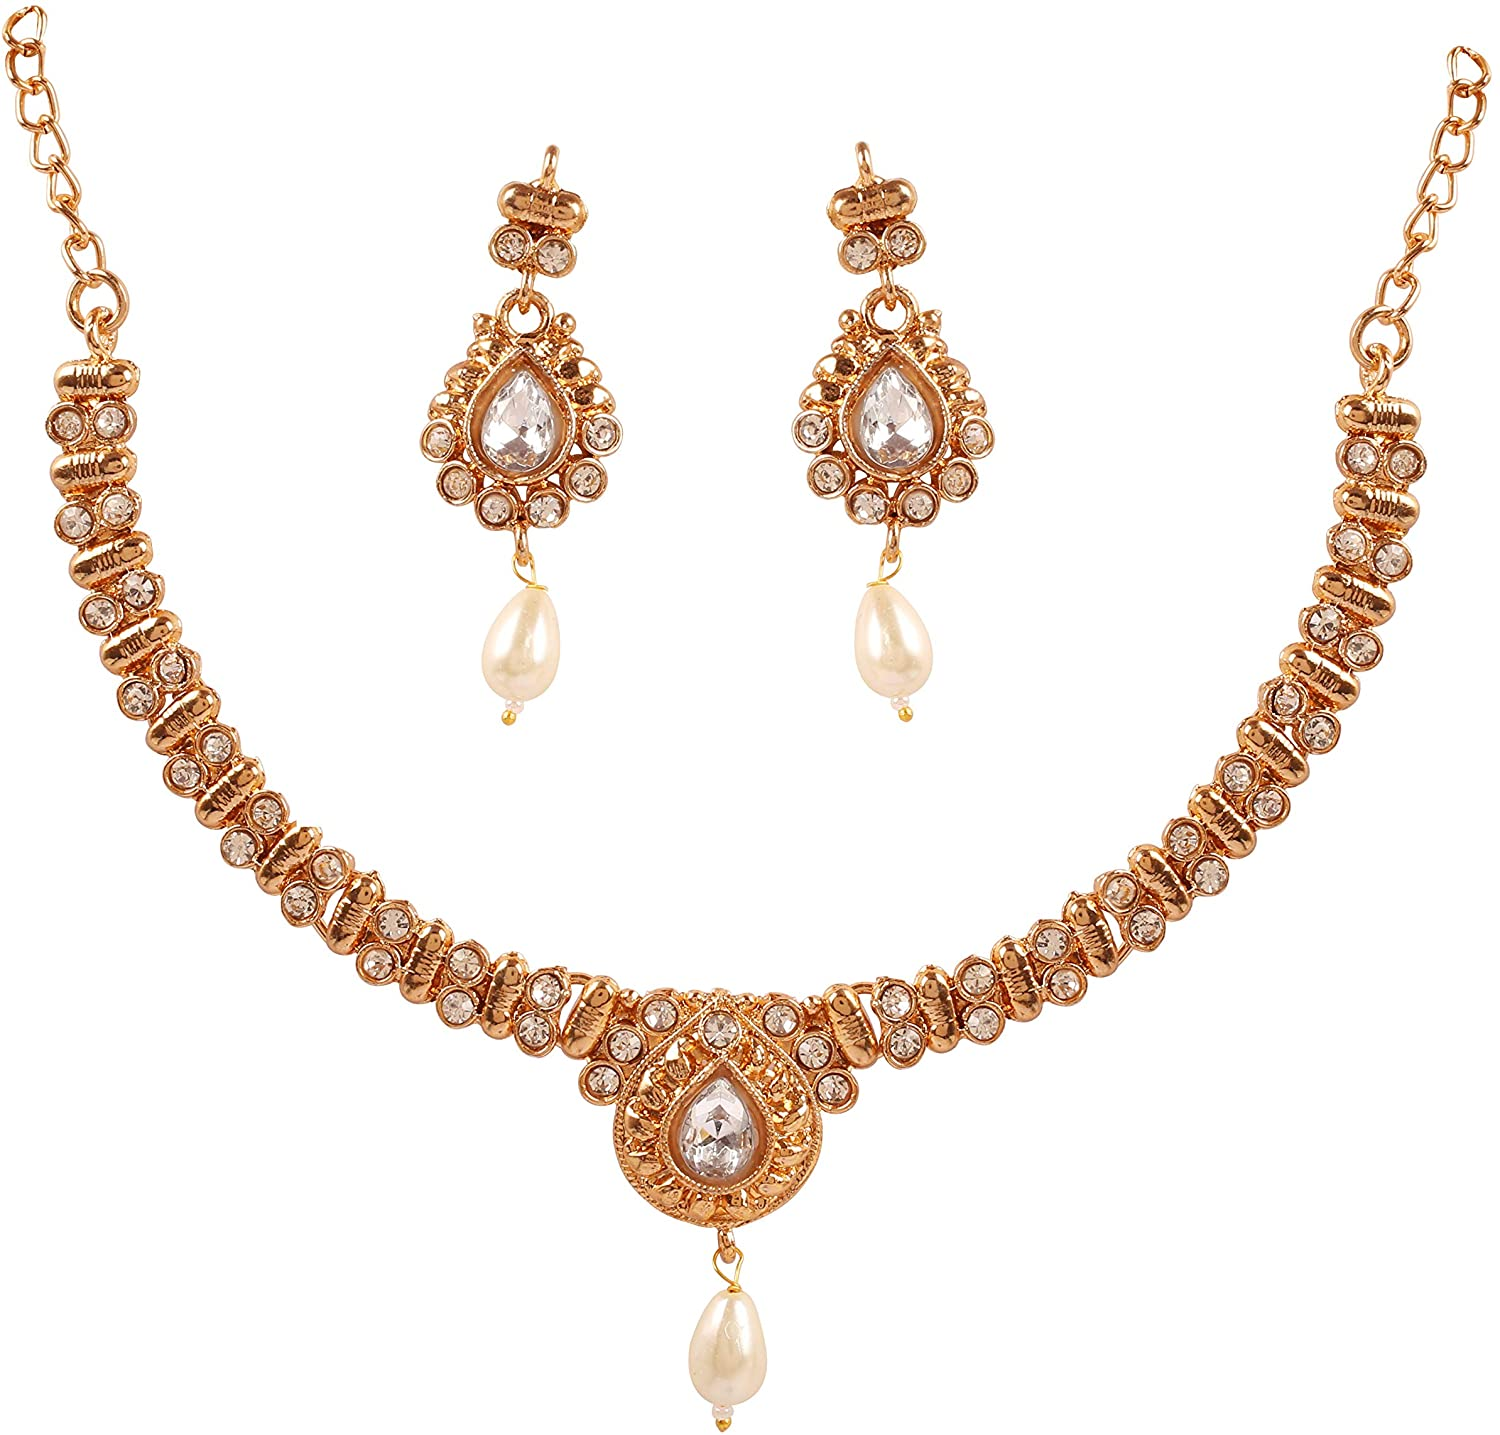 Touchstone Indian Bollywood Traditional Studded Look Rhinestone Pretty Wedding Designer Jewelry Necklace Set in Antique Gold Tone for Women.